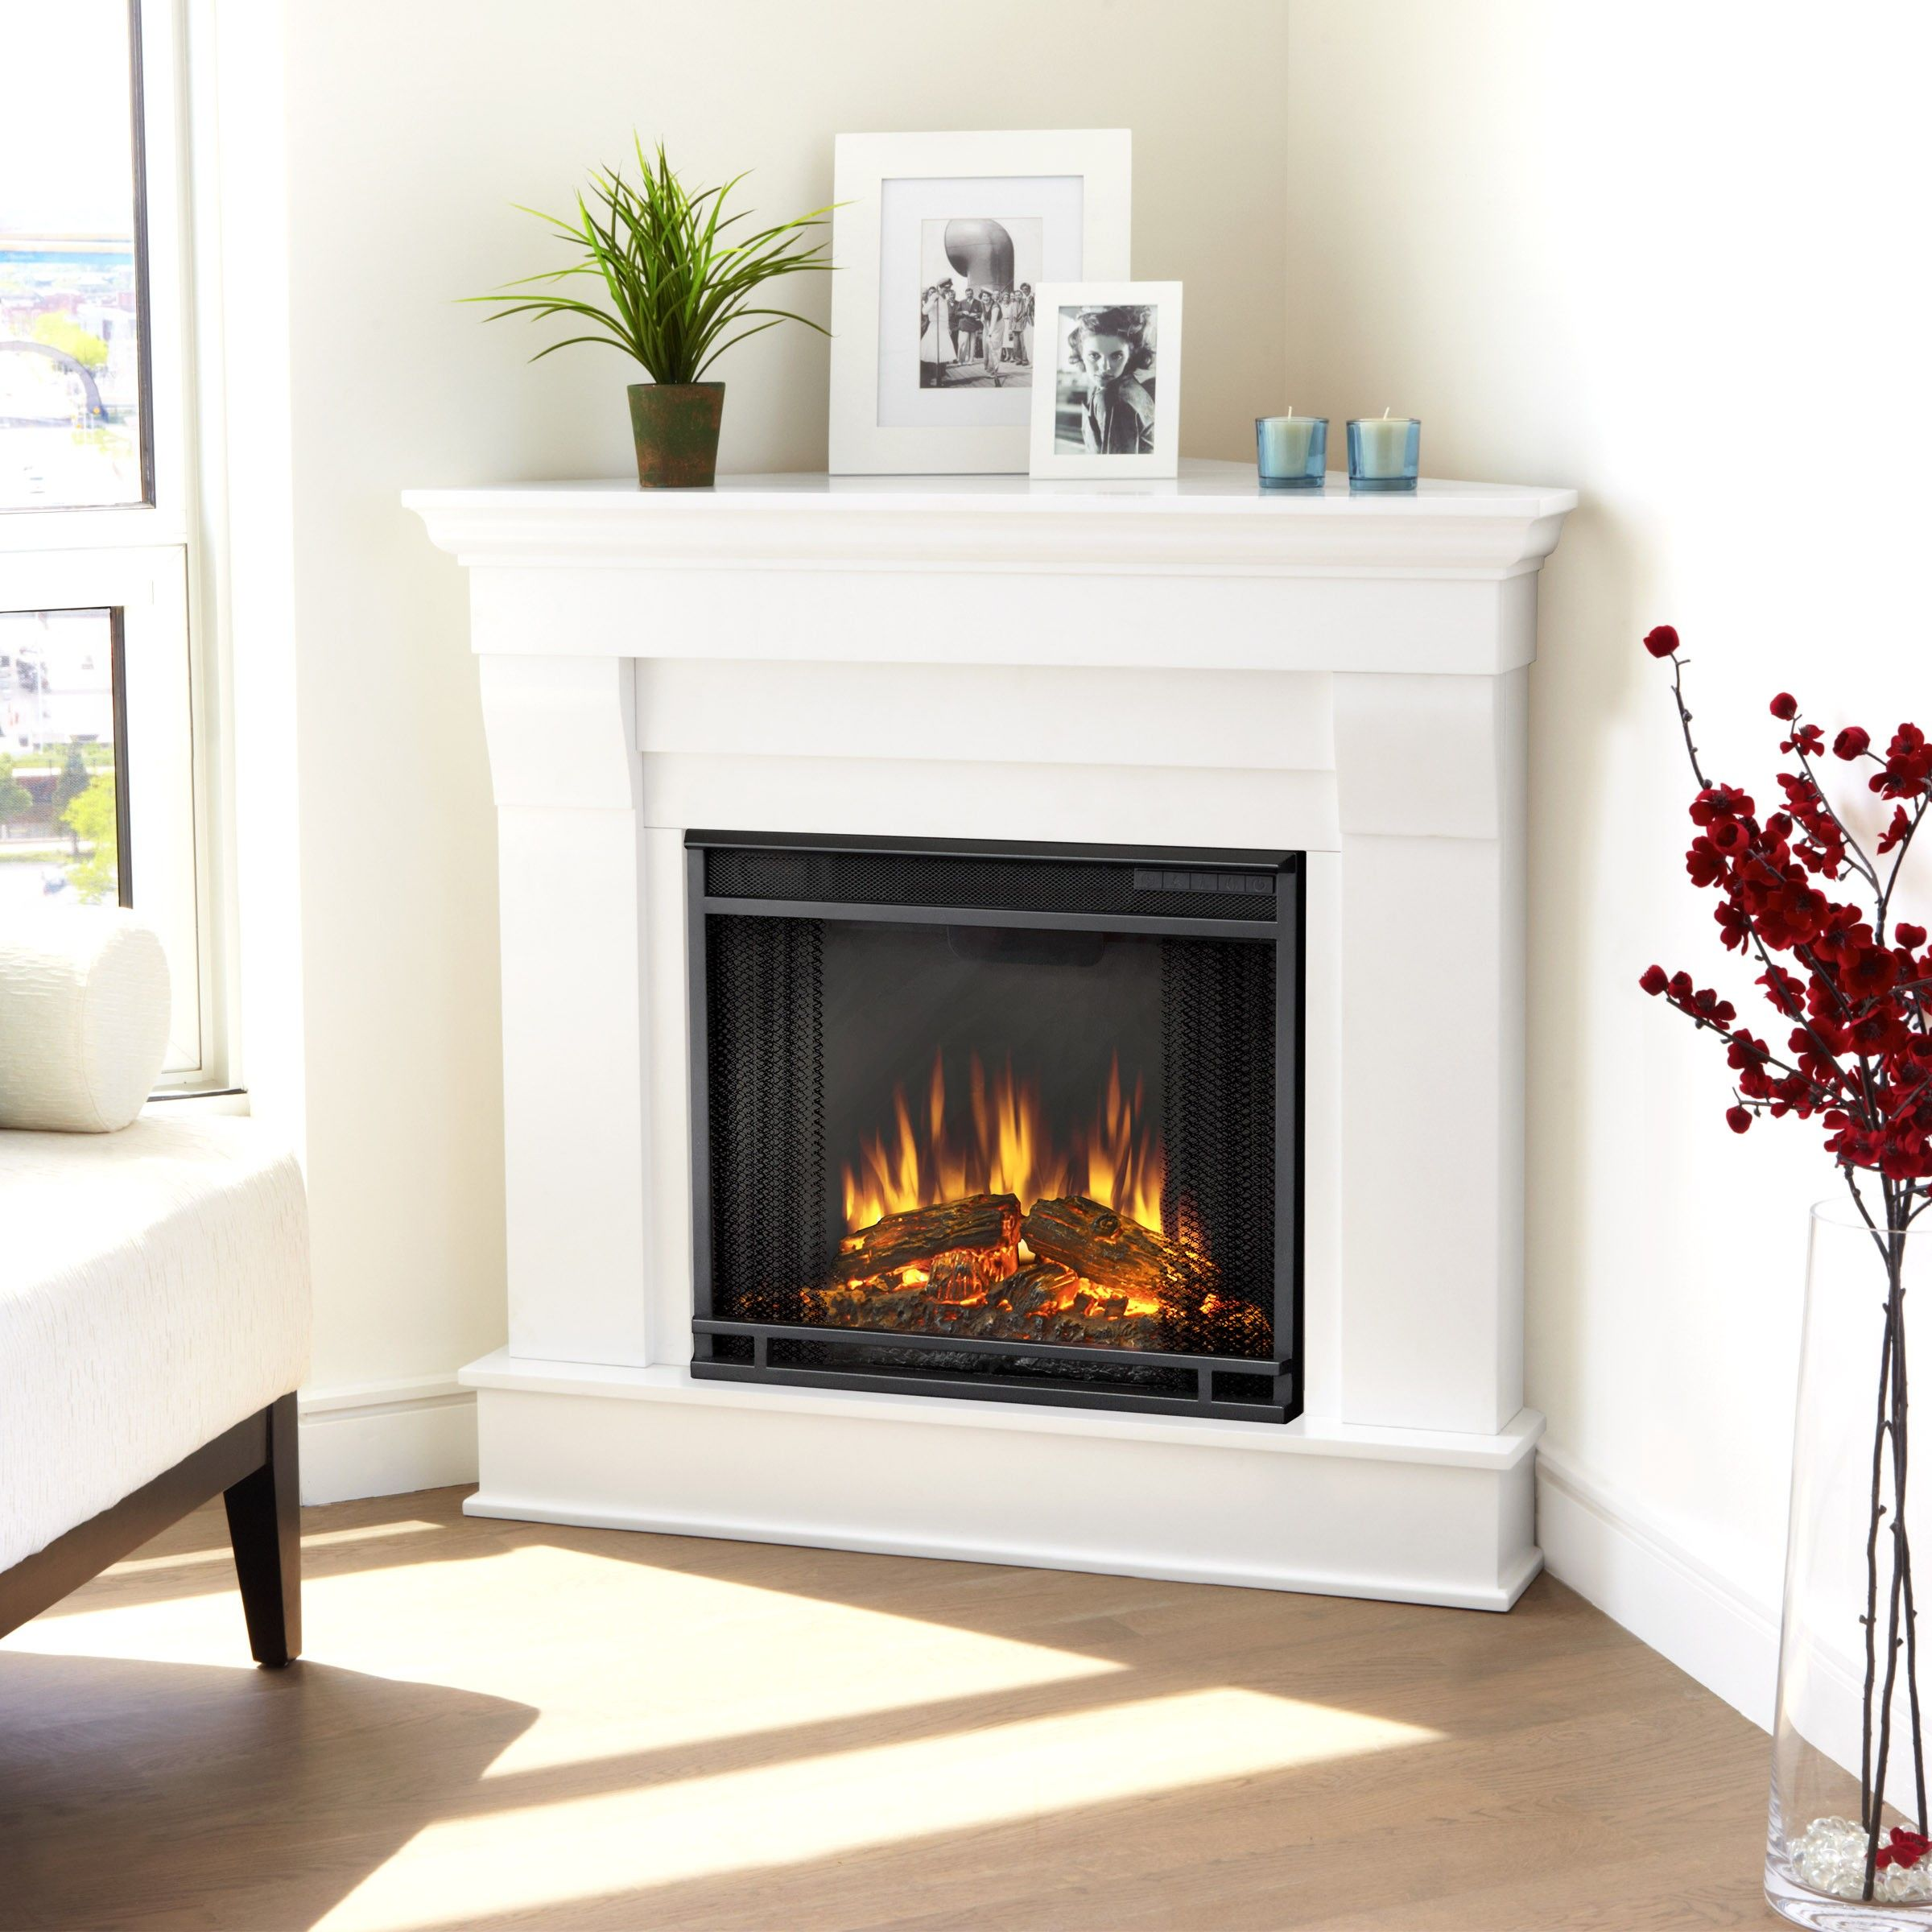 Bedroom electric fireplace - Bedroom Simply Plug In Real Flame White Chateau Corner Electric Fireplace Sit Back